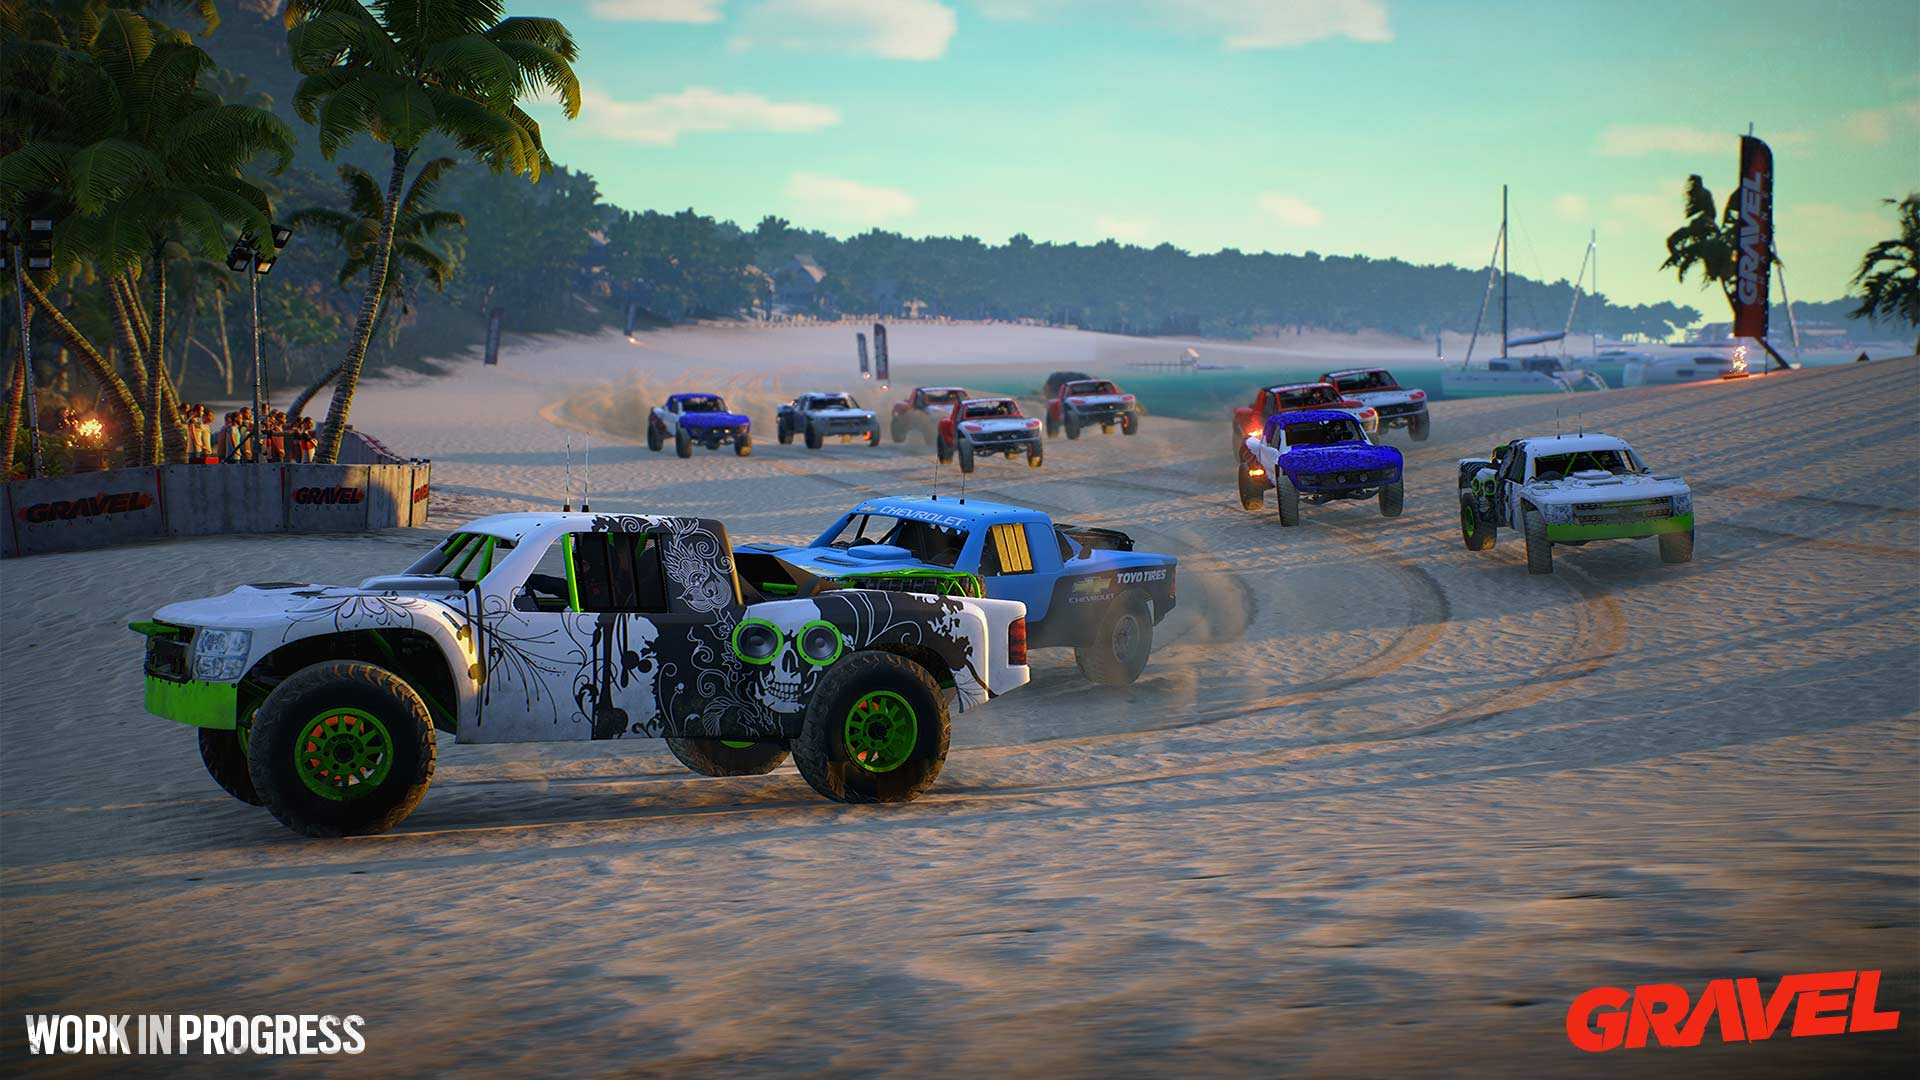 GRAVEL - screen - offroad cars racing beach